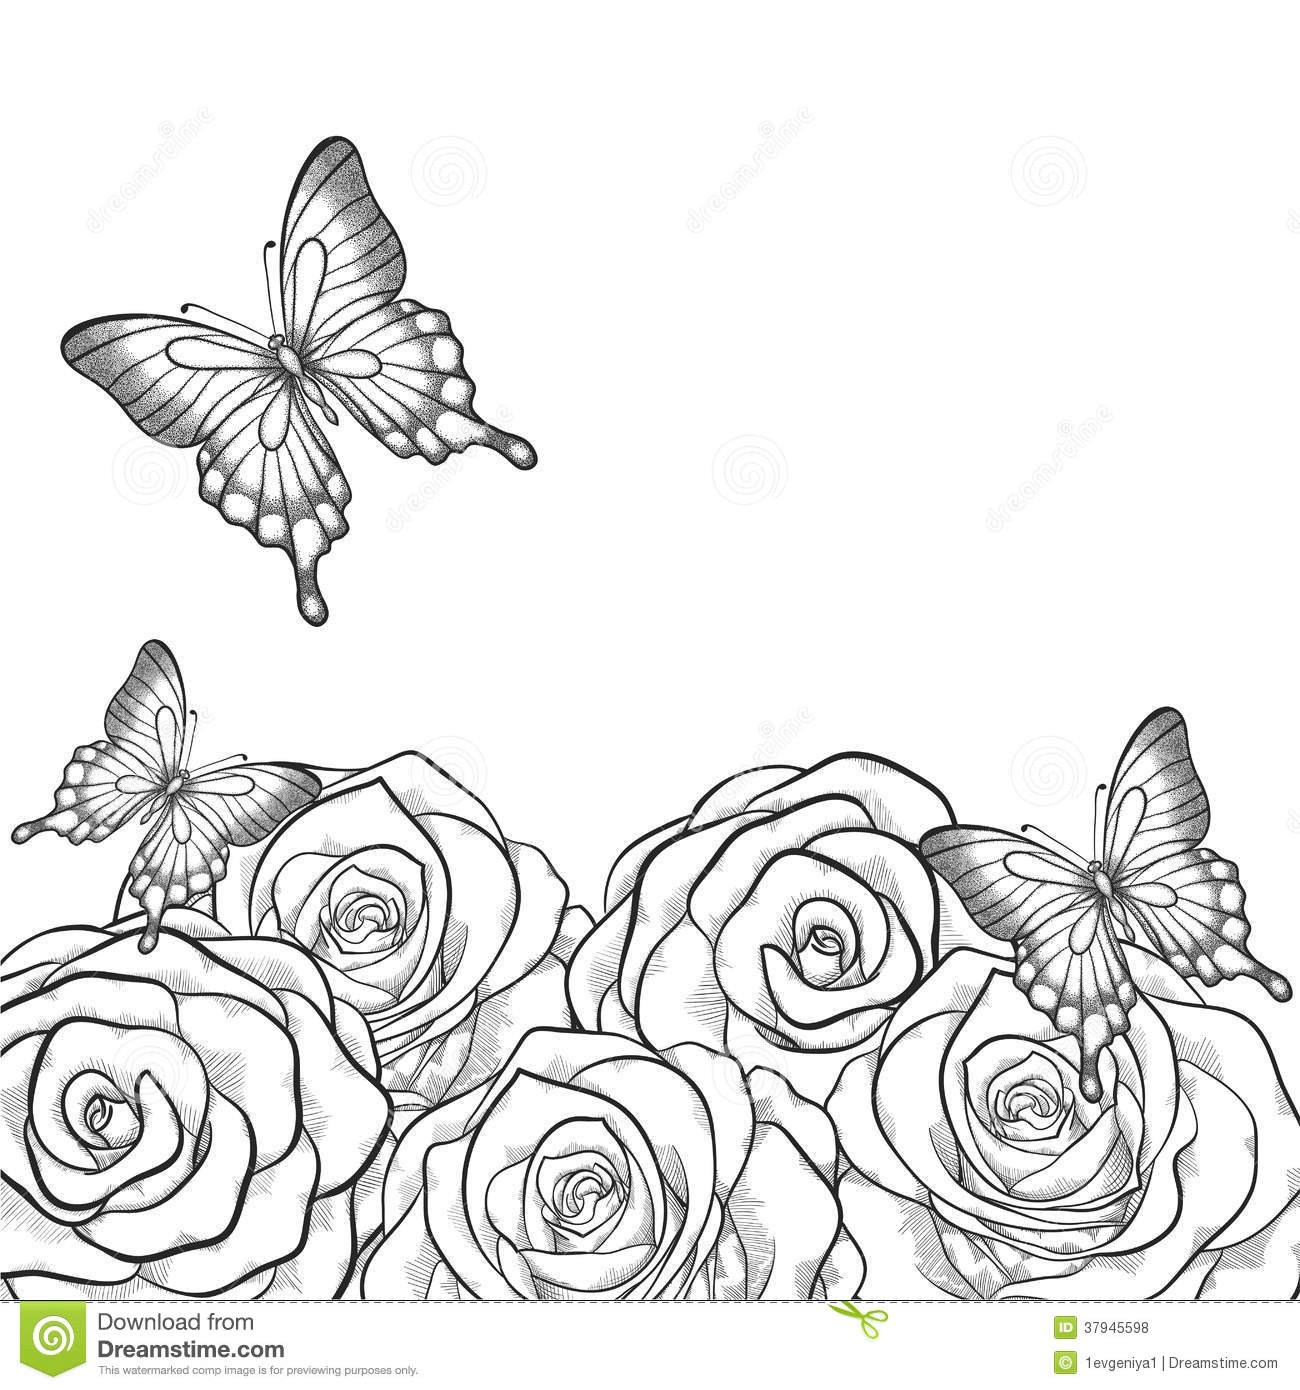 Contour Line Drawing Butterfly : Monochrome black and white card with flowers roses